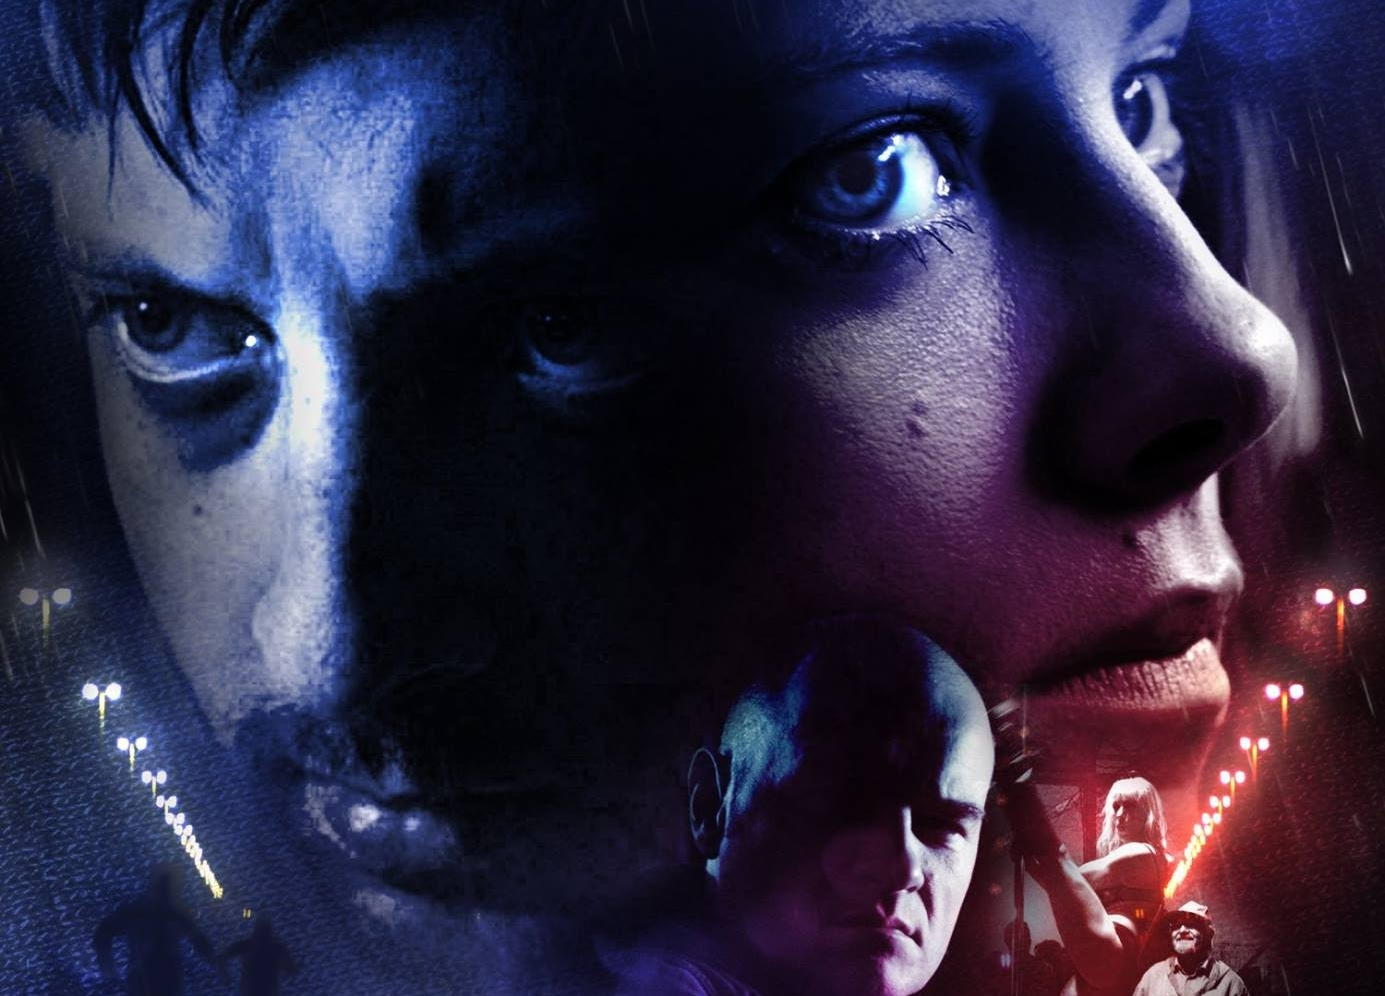 Blindrunners is a Polish-Dutch thriller about a couple lost in The Netherlands,offered a way out: to join a suicide game. It was made as part of Film School and directed by David-Jan Bronsgeest.